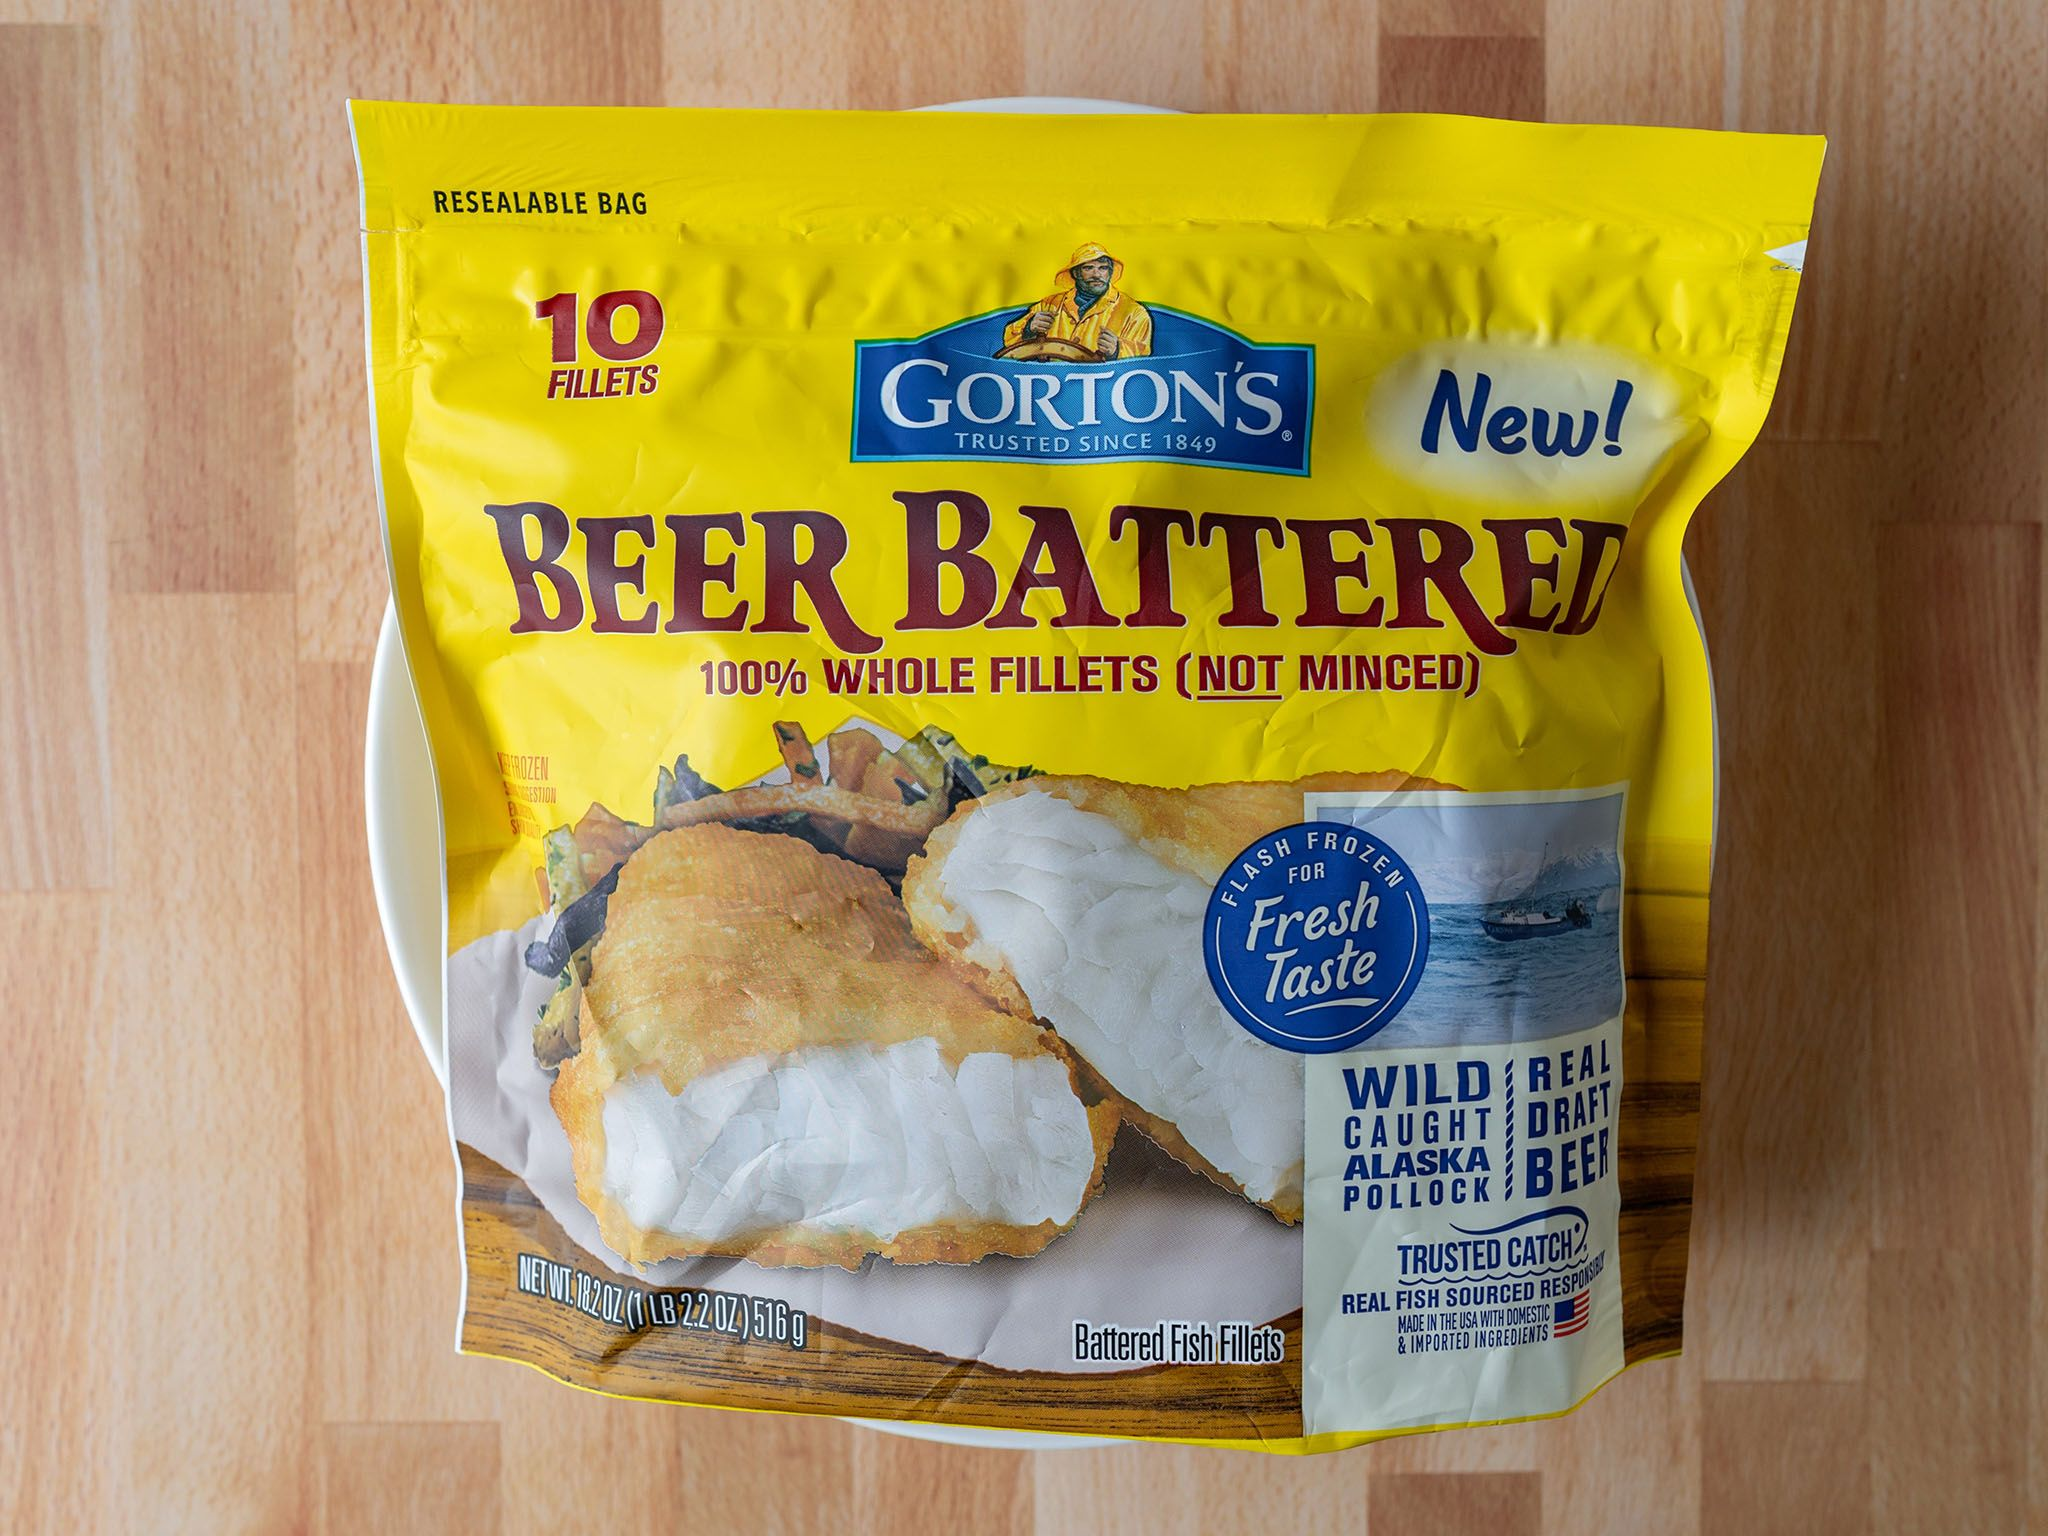 How to cook Gorton's Beer Battered Whole Fillets in an air